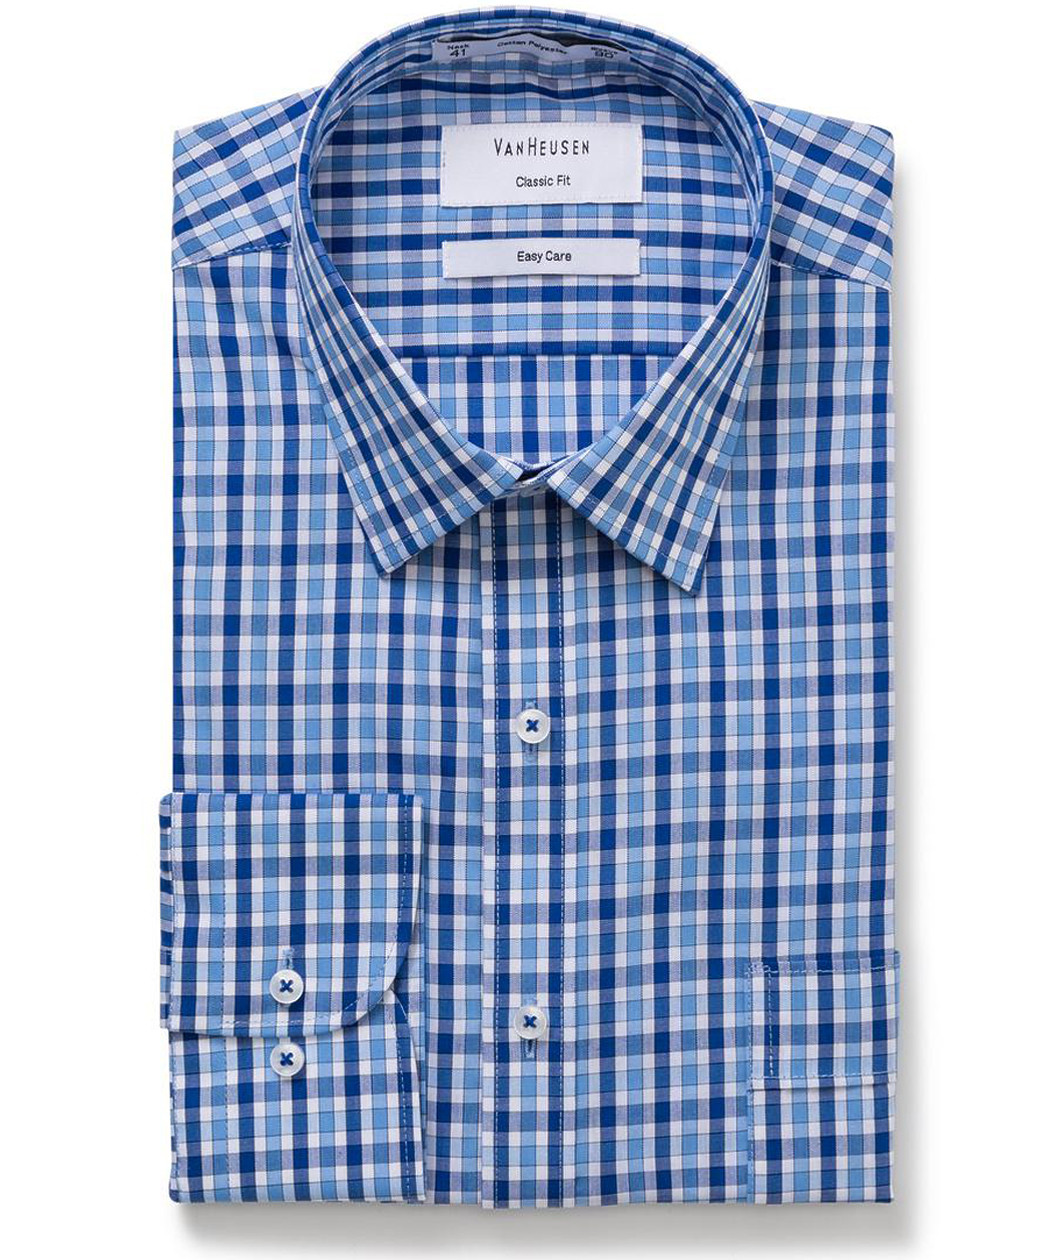 Van Heusen Classic Relaxed Fit Shirt Blue Large Check Mens